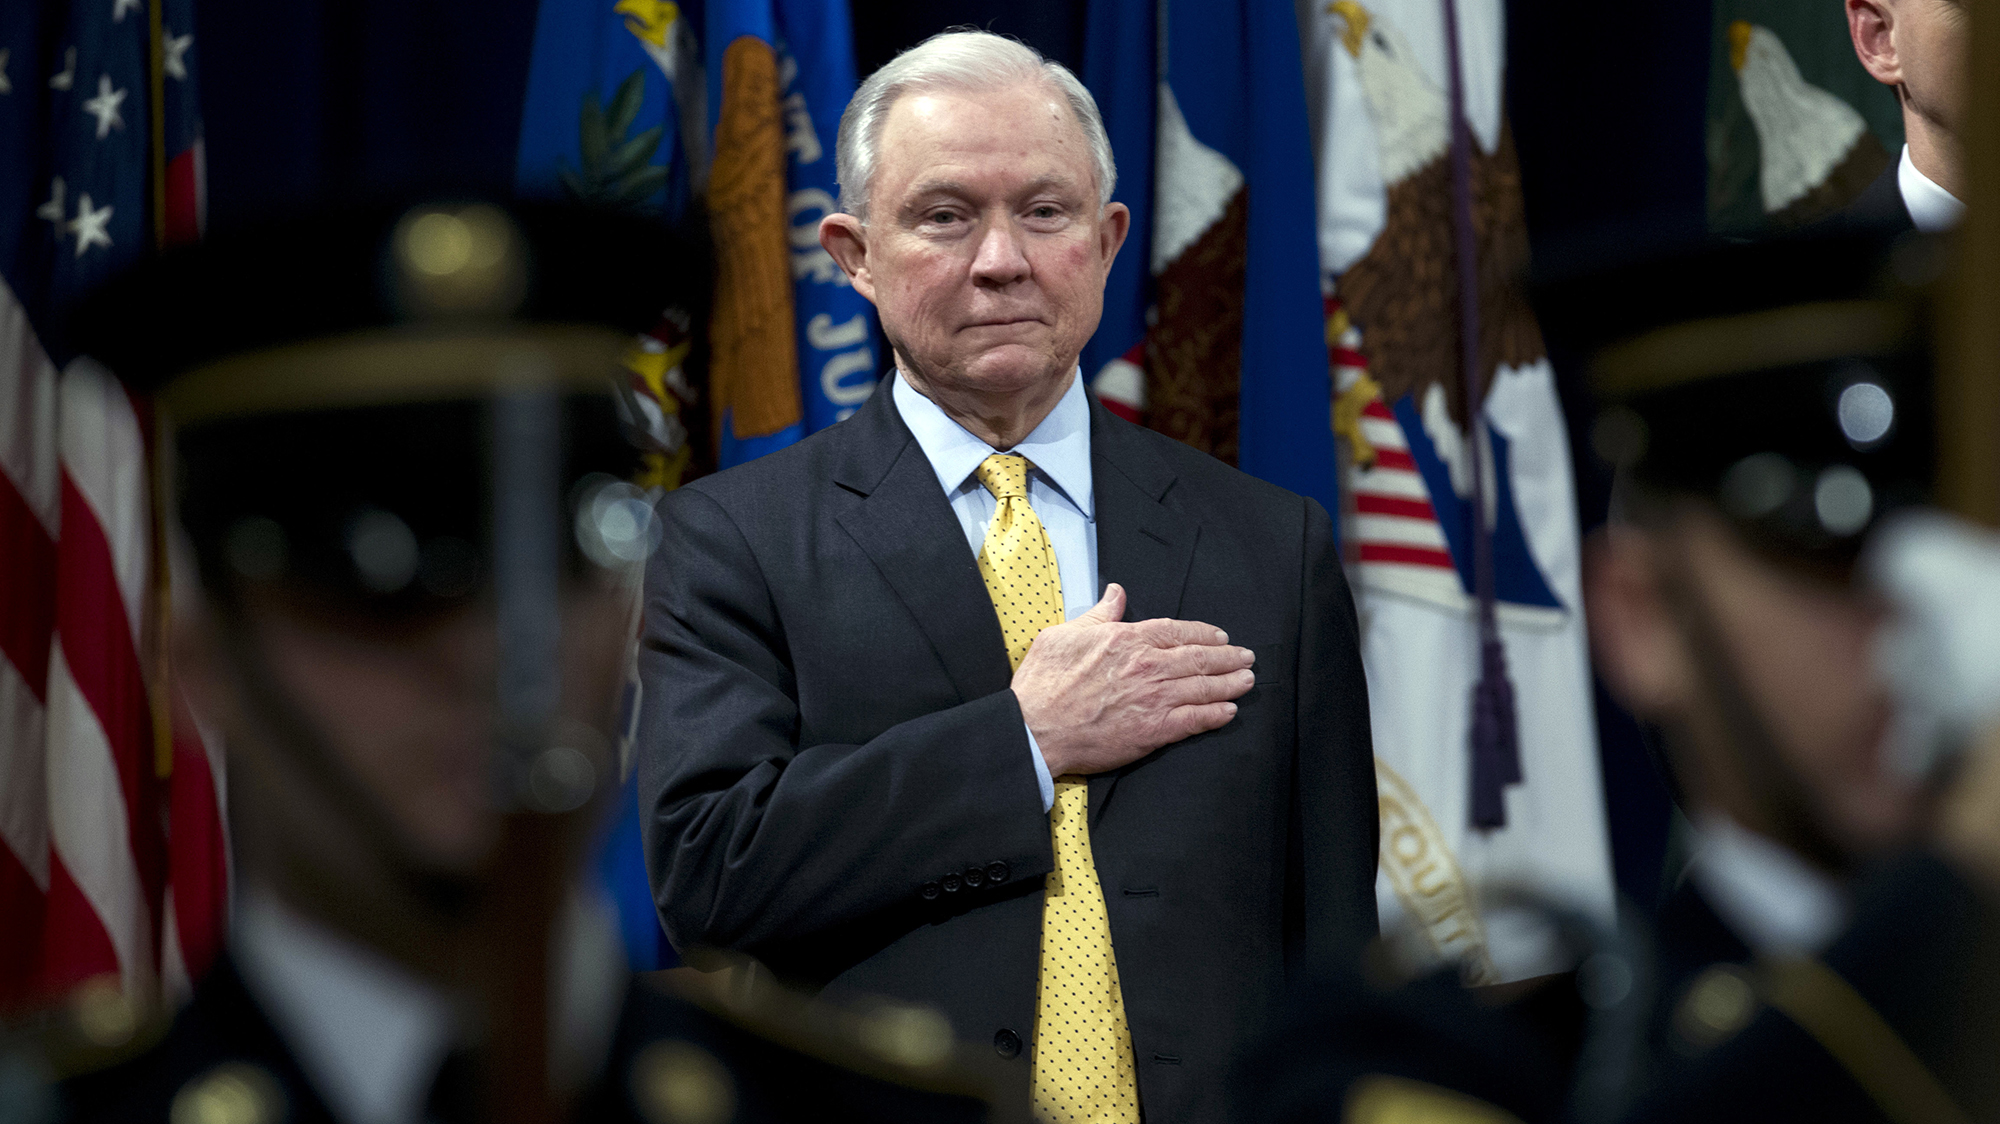 Attorney General Jeff Sessions at the Jusice Department on February